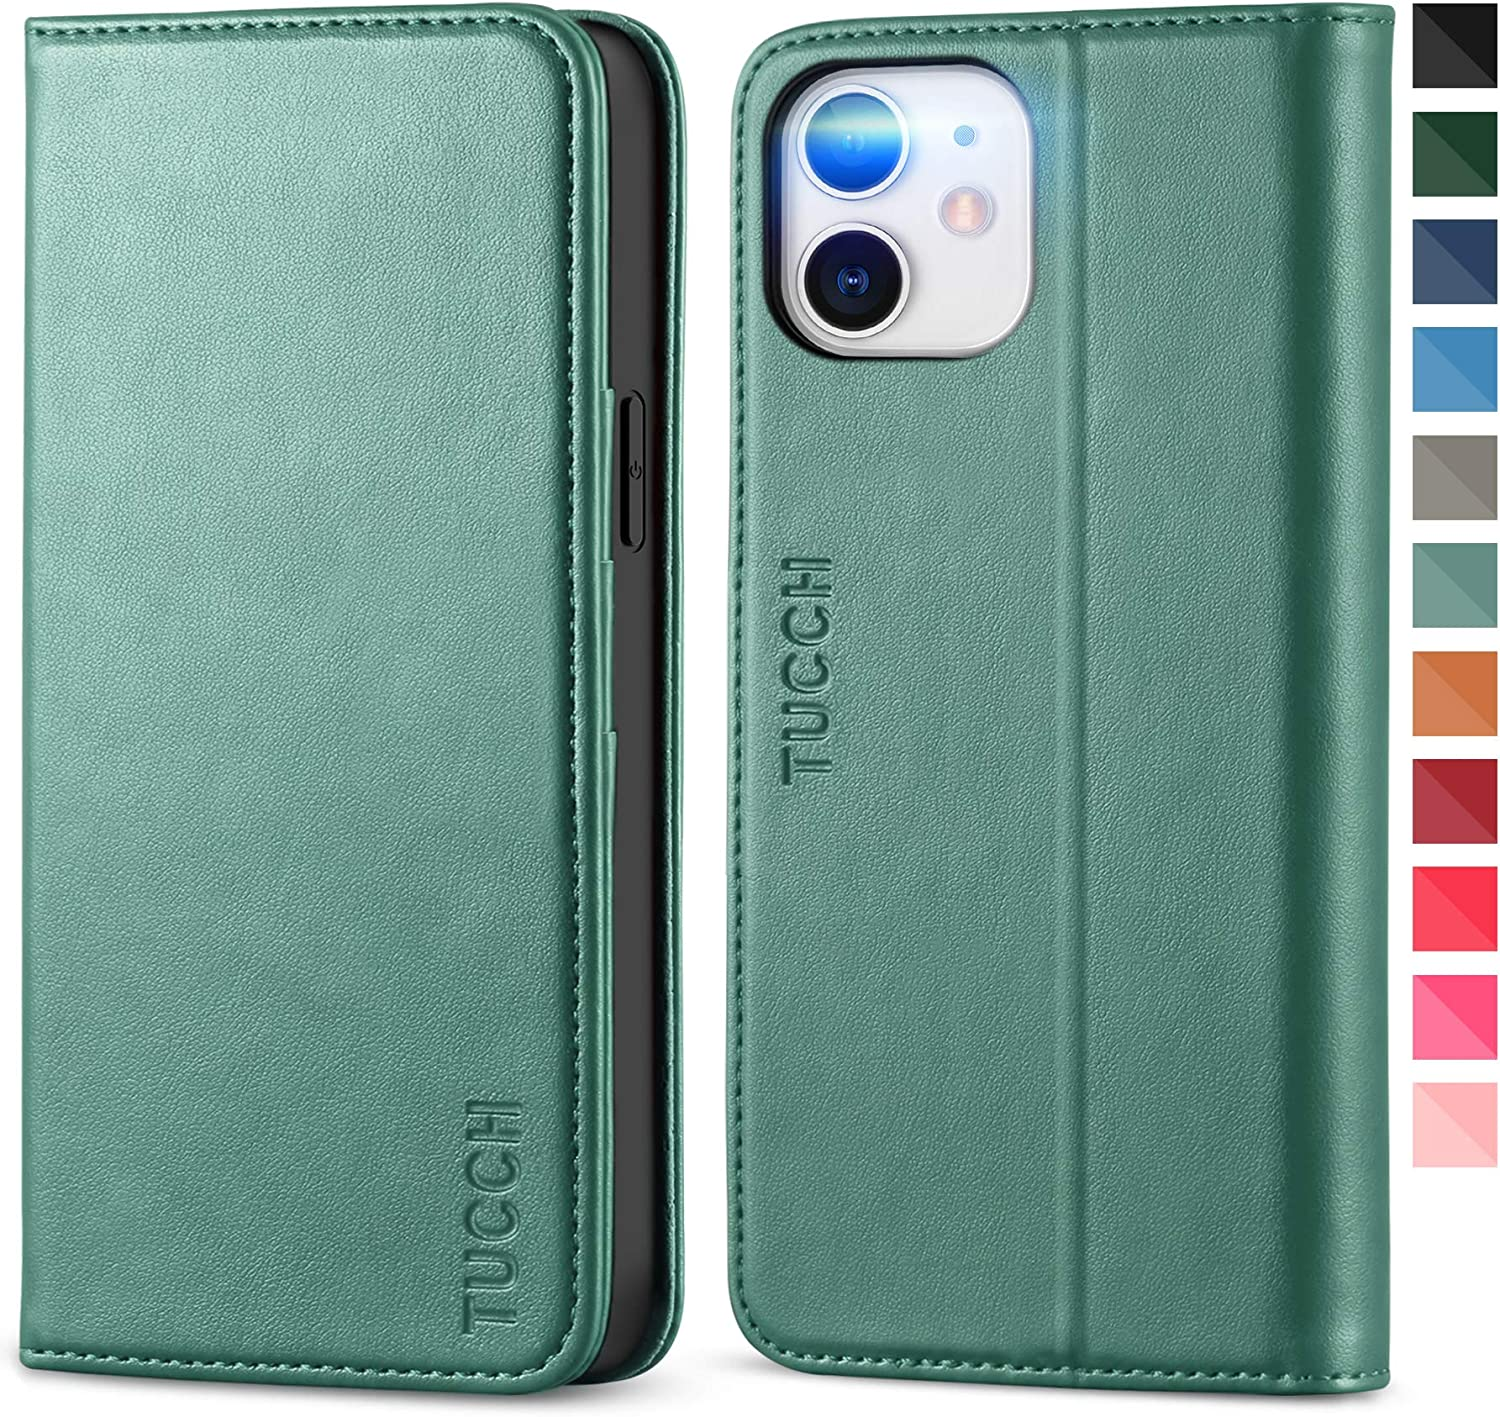 TUCCH iPhone 12 Pro Wallet Case, iPhone 12 PU Leather Case with Stand [Credit Card Slot] Flip Notebook Cover [TPU Protective Interior Case] Compatible with iPhone 12/12 Pro 6.1-inch, Myrtle Green